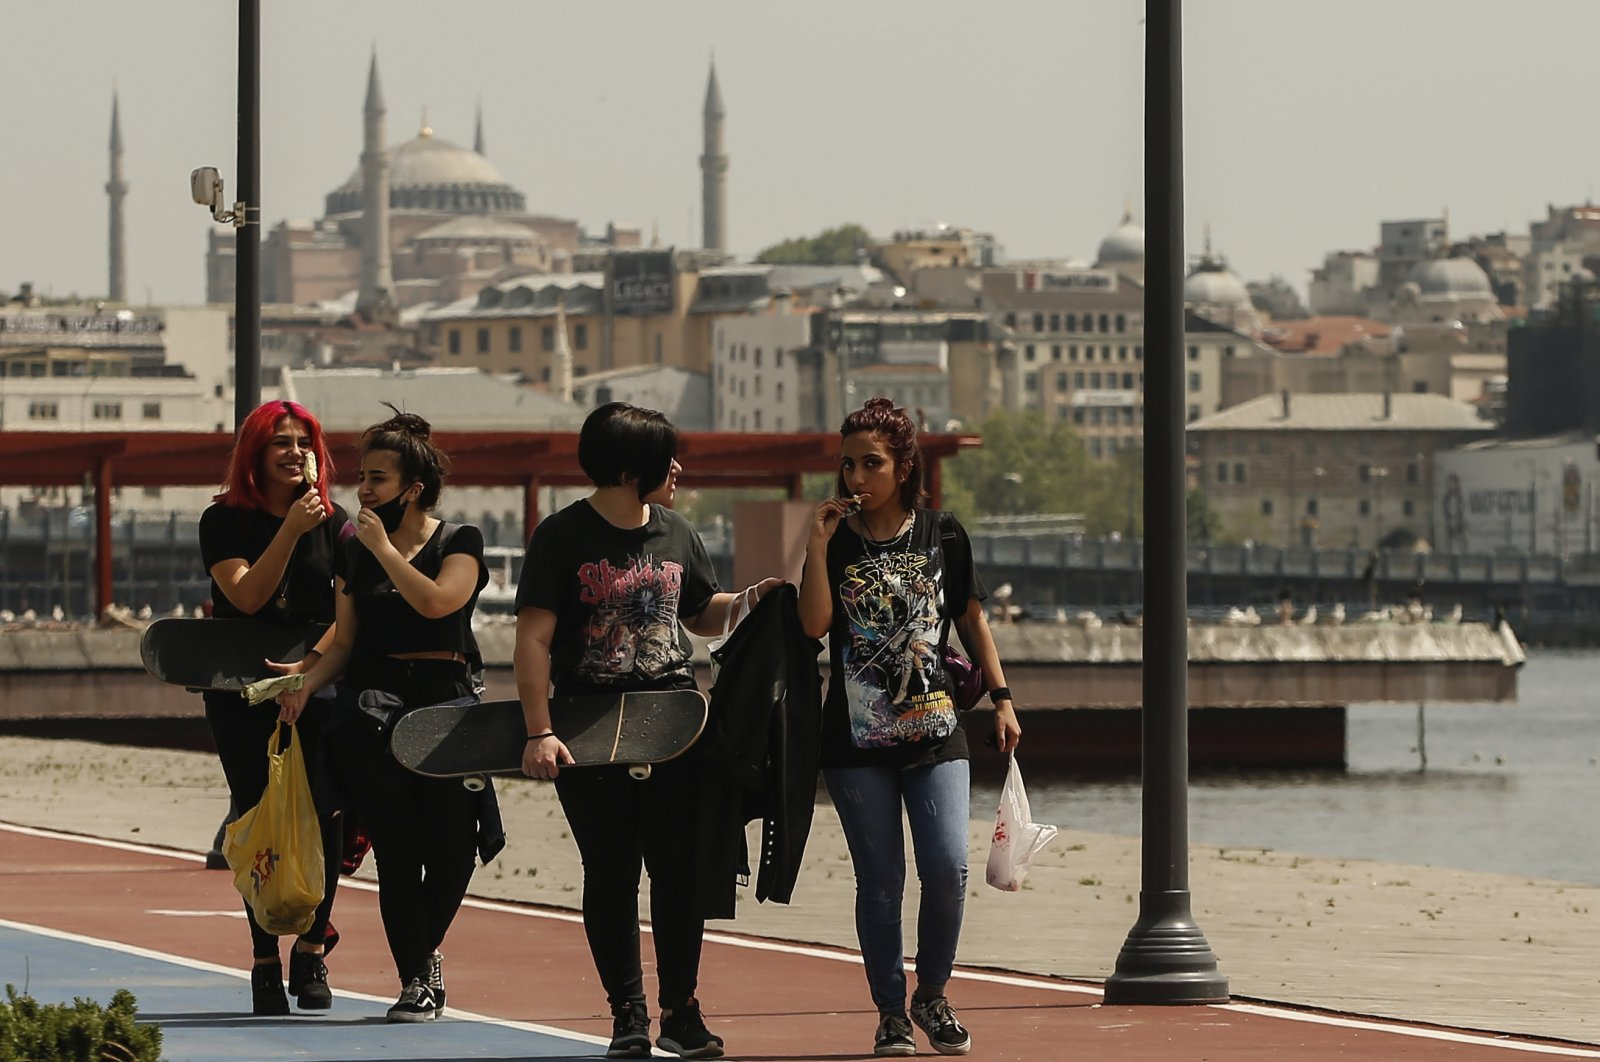 Turkish girls walk in Istanbul, backdropped by the Hagia Sophia as teenagers were able to leave their homes for the first time in 42 days on Friday, as their turn came for a few hours of respite from Turkey's coronavirus lockdowns, Istanbul, Turkey, May 15, 2020. (AP Photo)